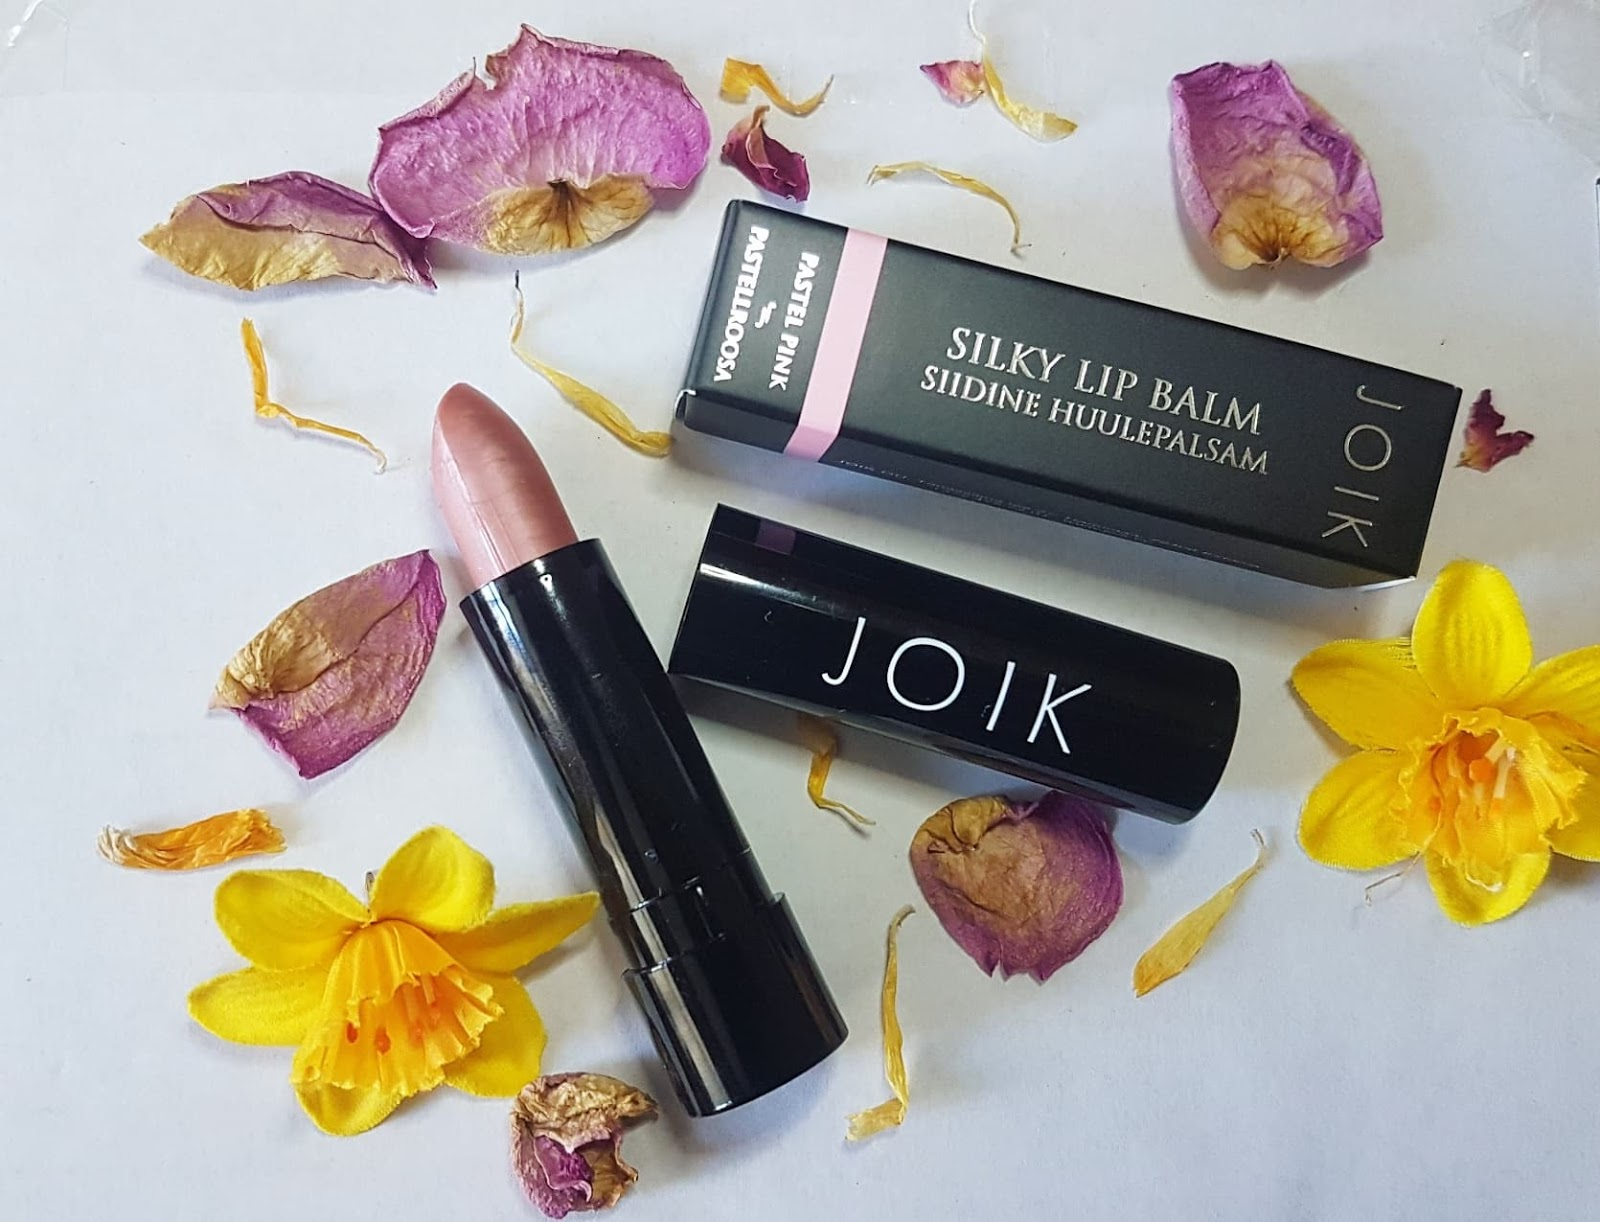 Joik Silky Lip Balm Review - Love Lula Beauty Box